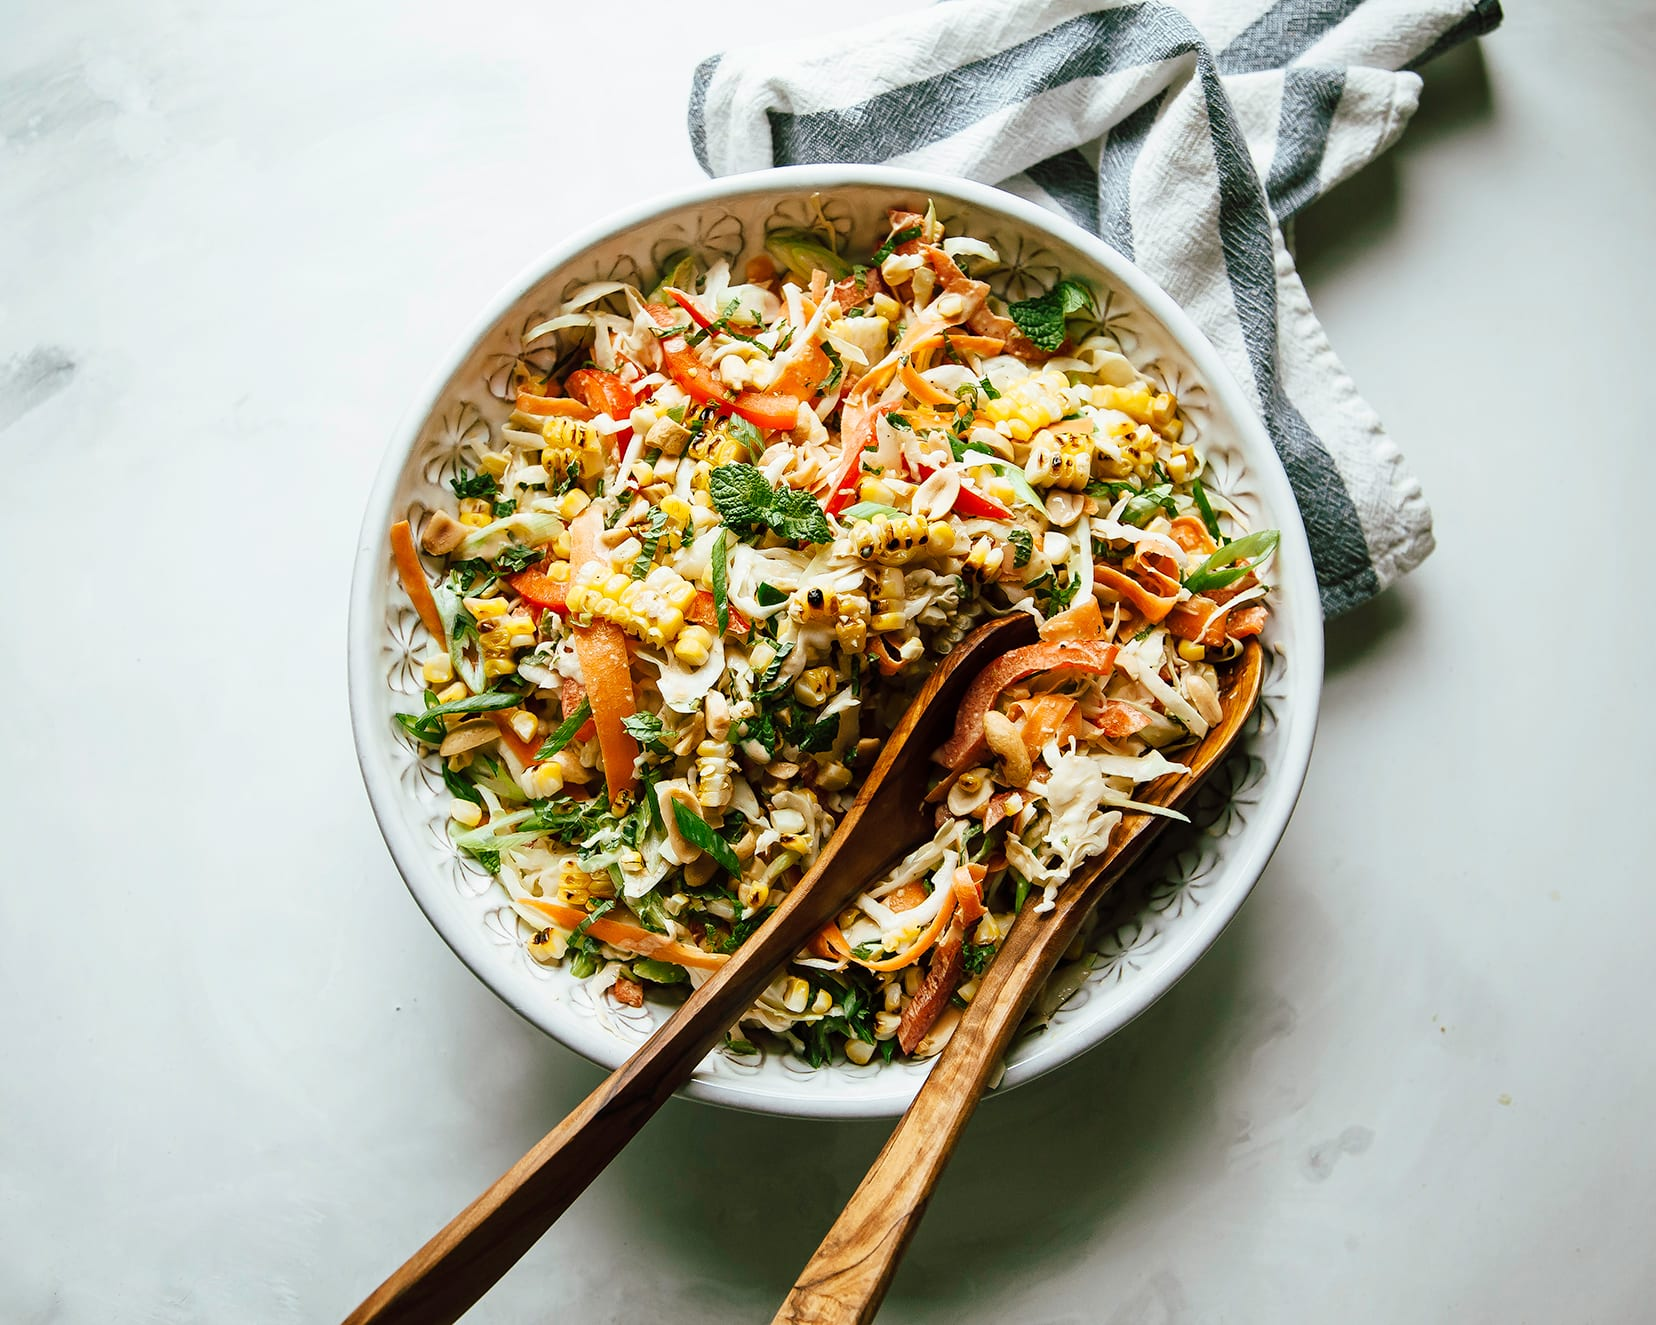 An overhead shot of charred corn slaw with peanut butter lime dressing. The slaw is served in a white patterned bowl on top of a white background with a striped napkin to the side.